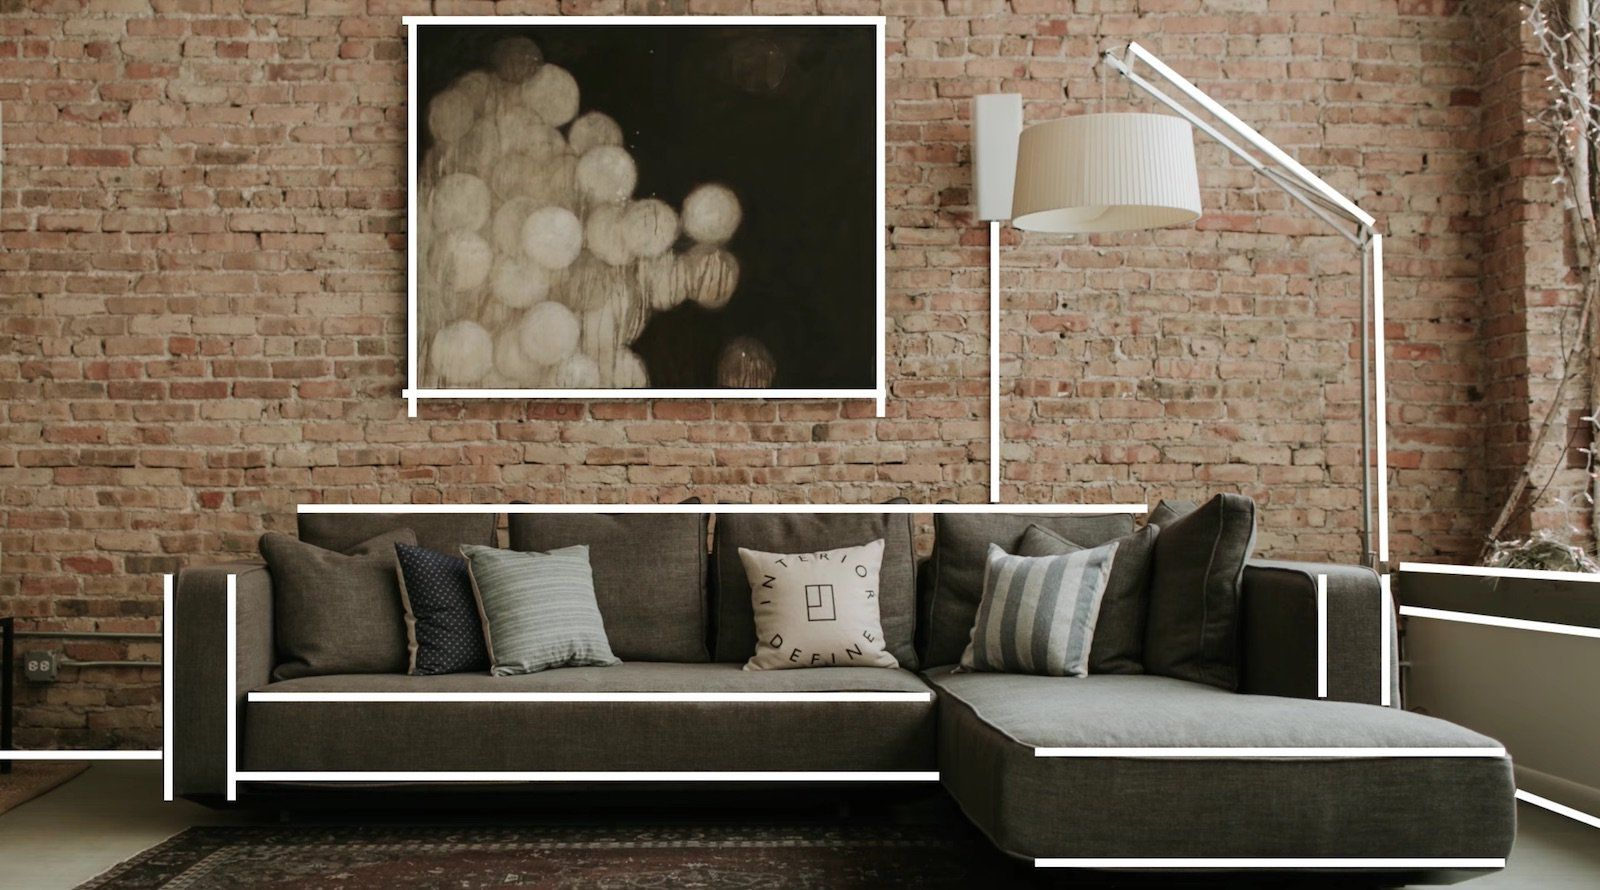 5 Simple Tips For Shooting Better Interior Photography